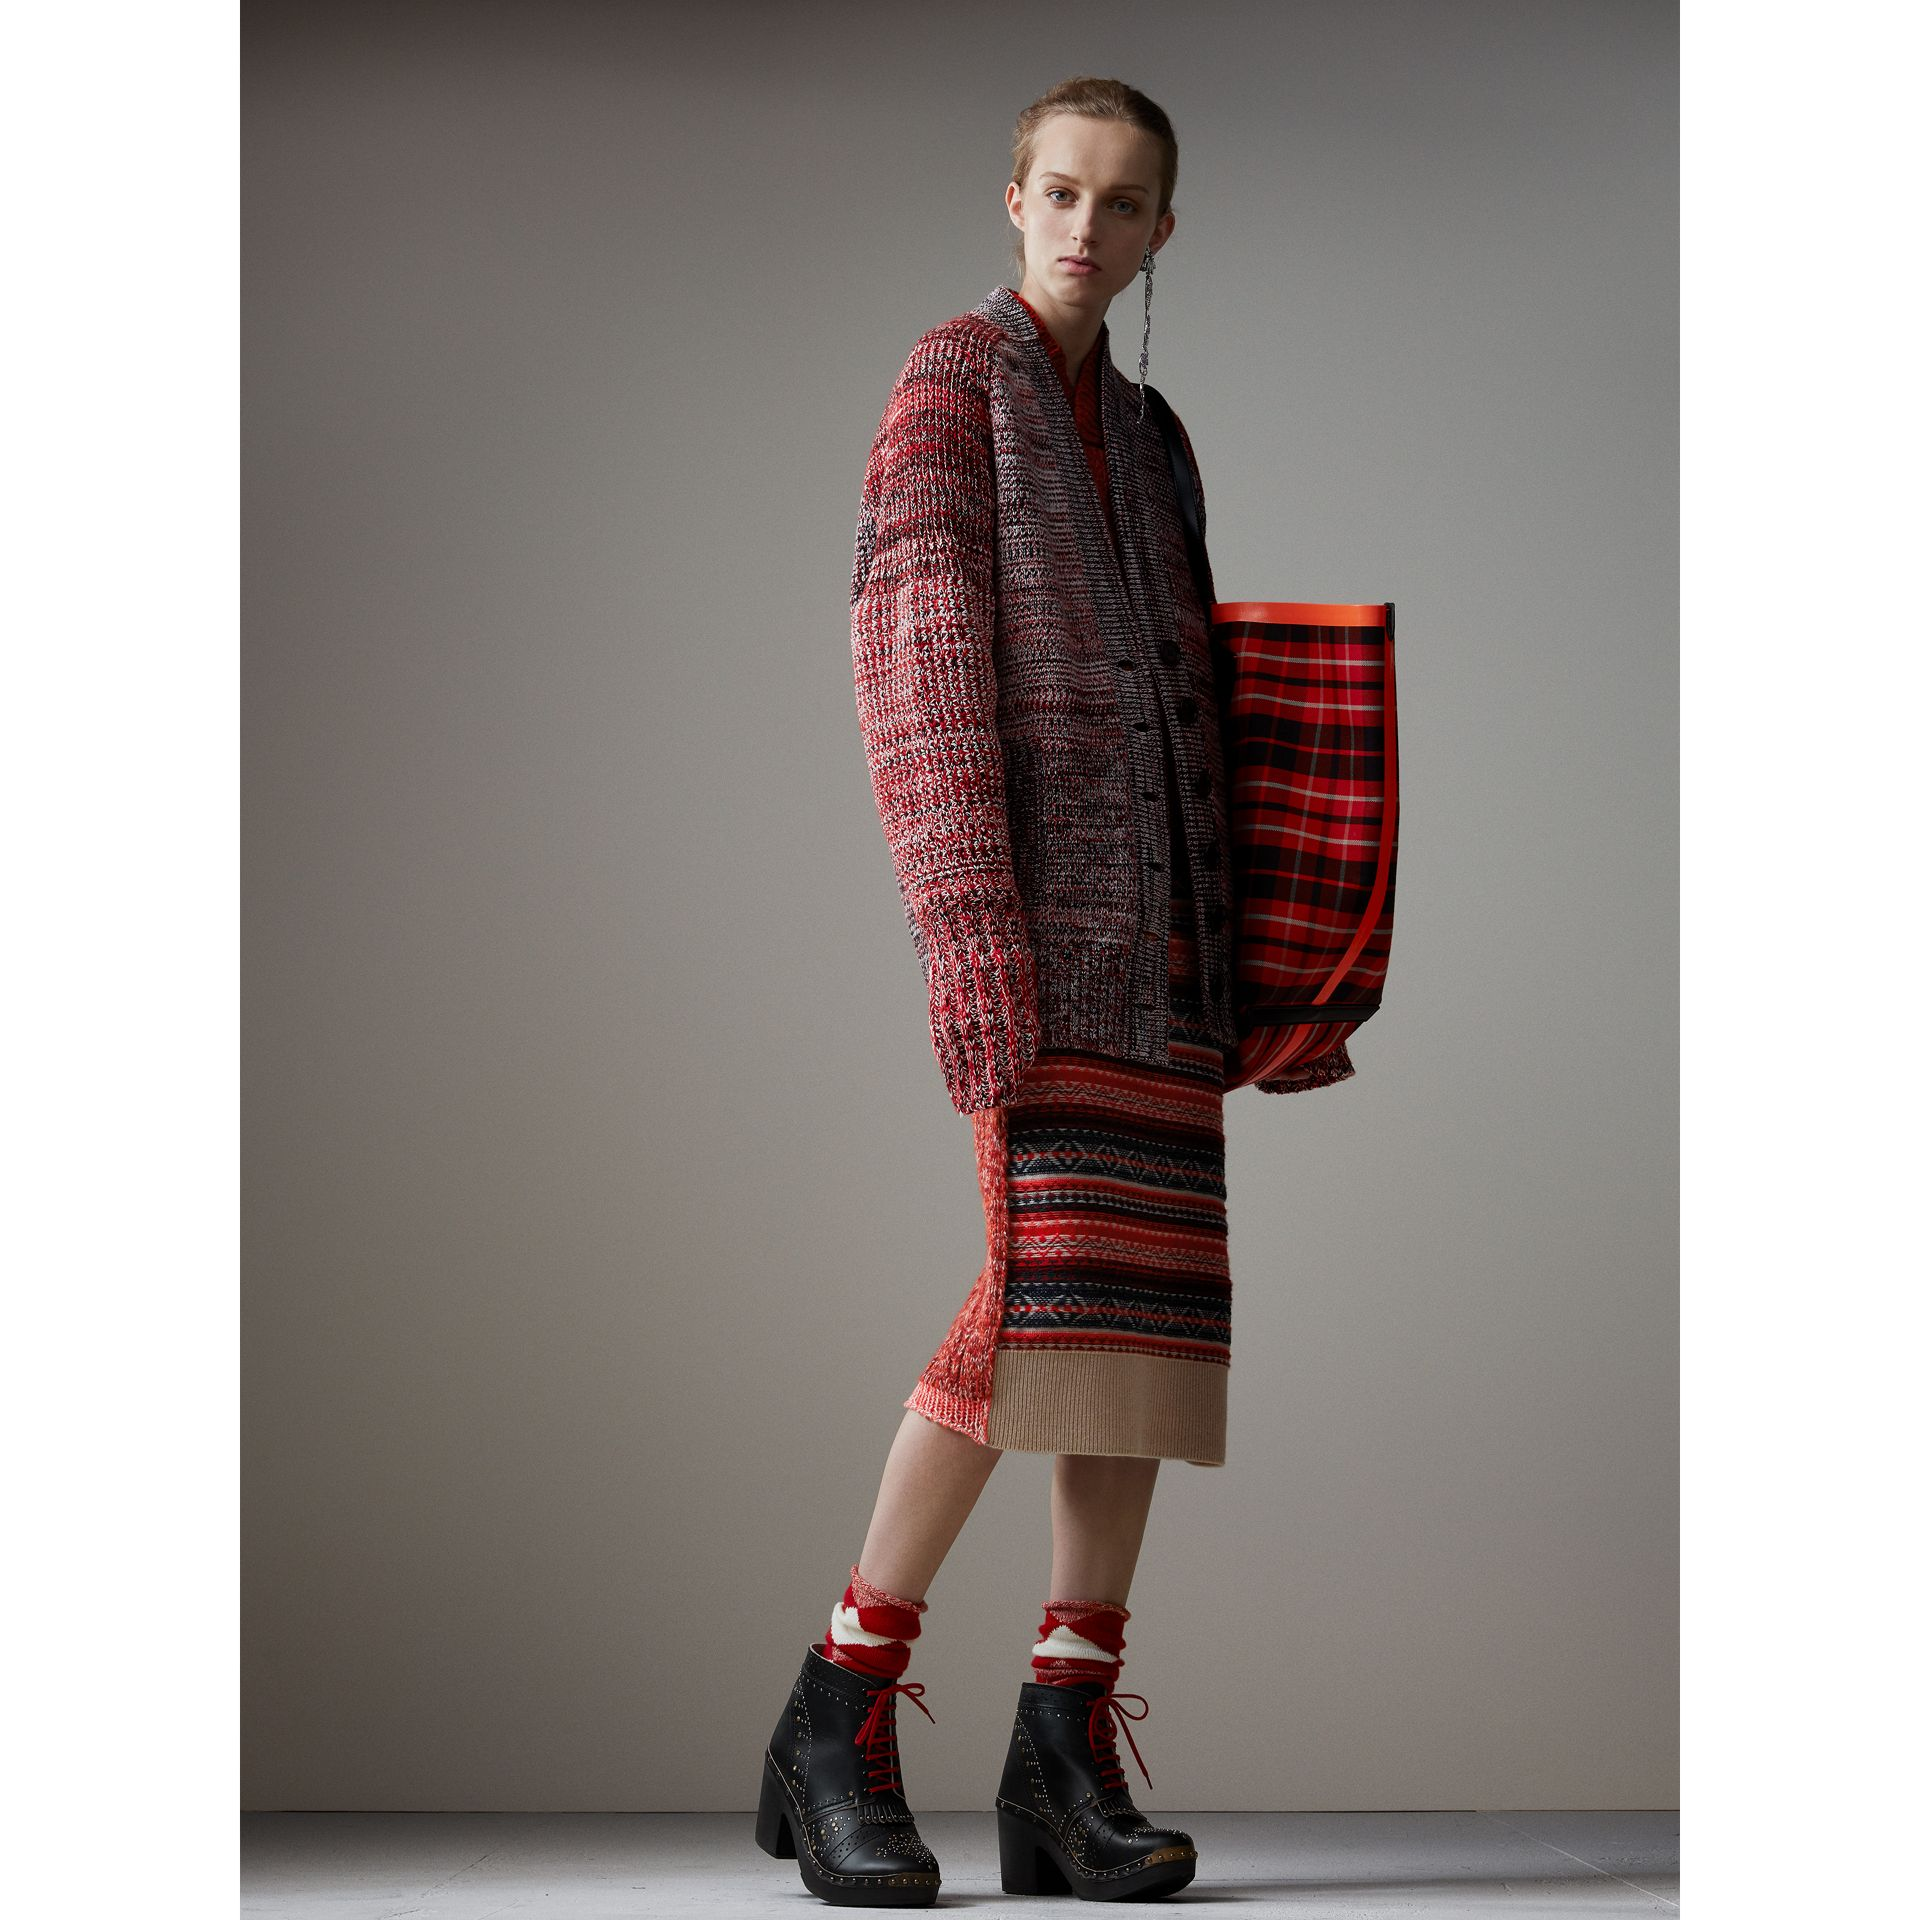 Cashmere Wool Patchwork Sweater in Berry Red - Women | Burberry Australia - gallery image 5